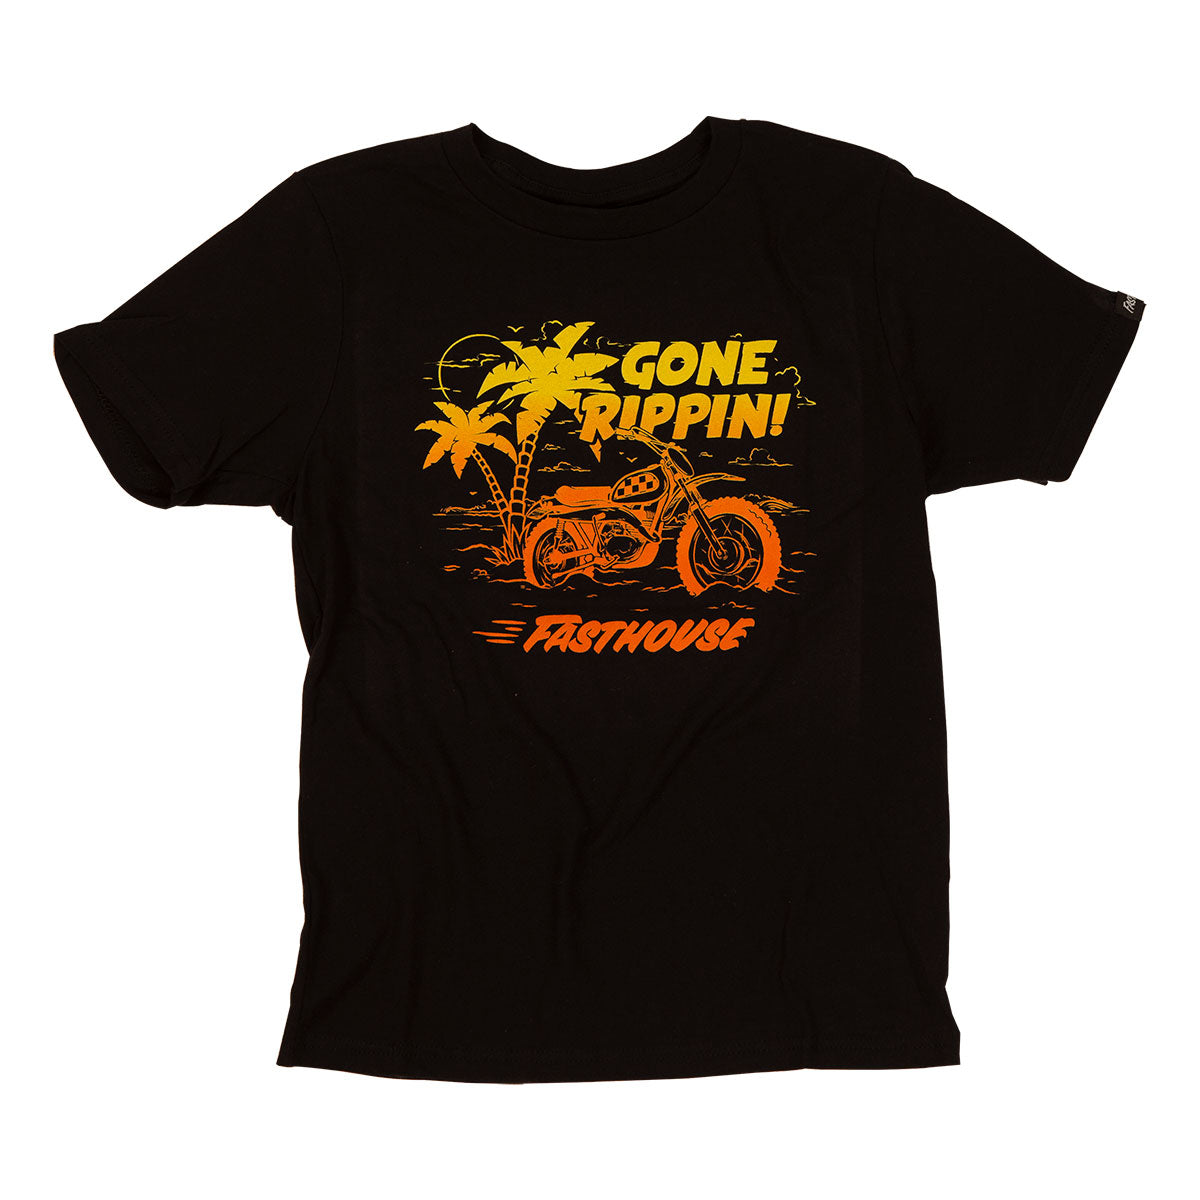 Fasthouse - Gone Rippin' Youth Tee - Black